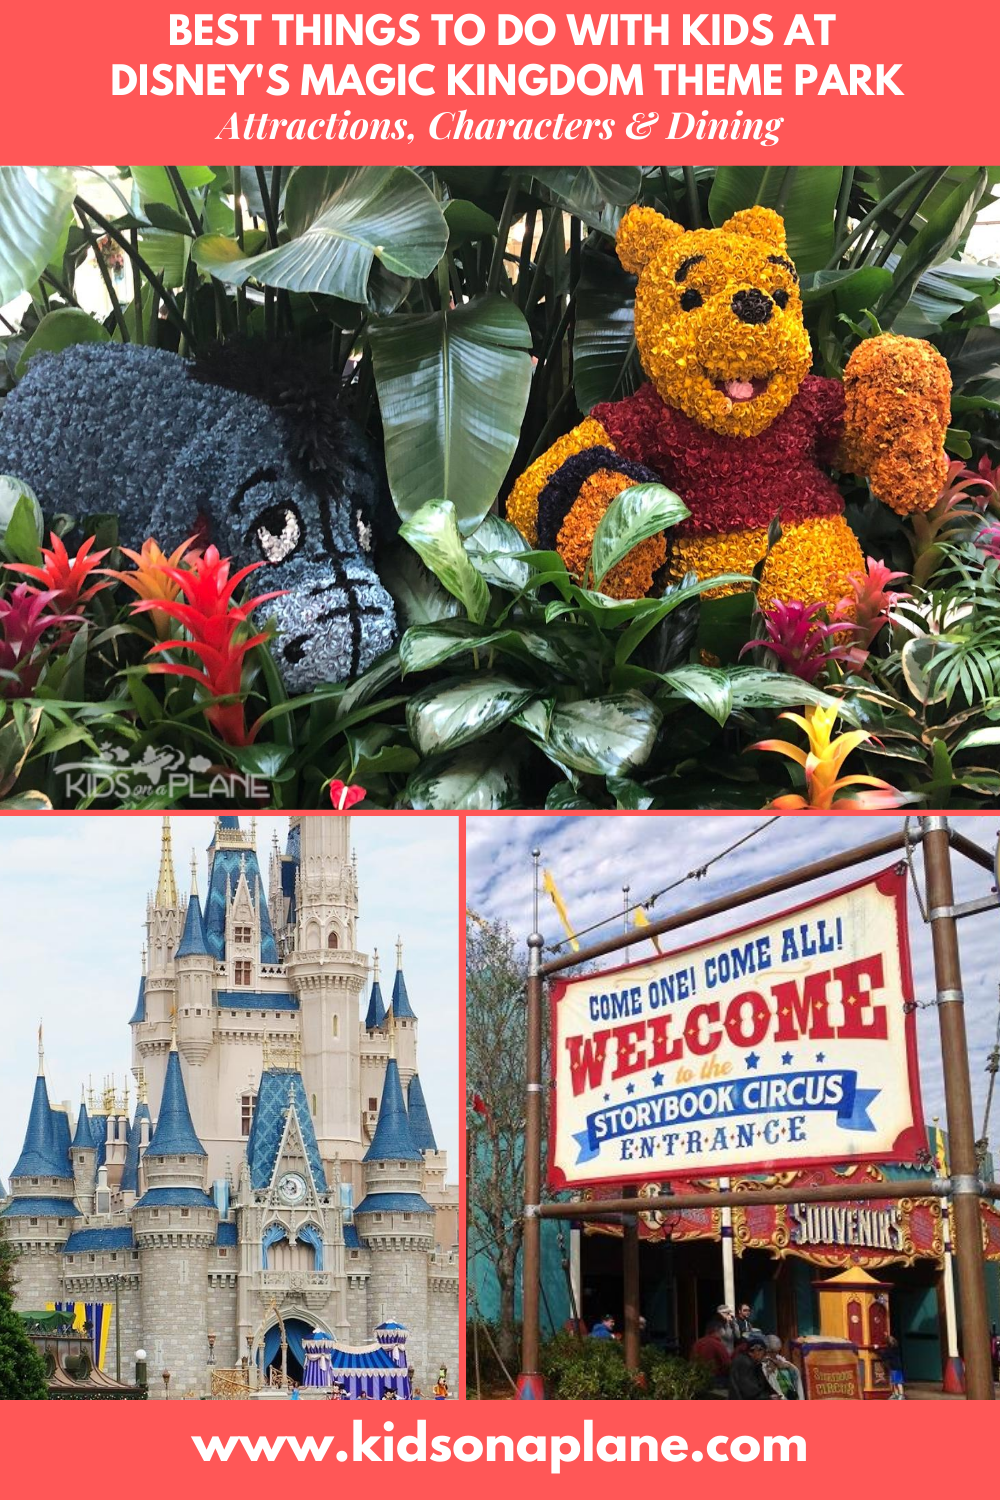 Best things to do with kids at Disney World Magic Kingdom - Attractions Rides and Dining